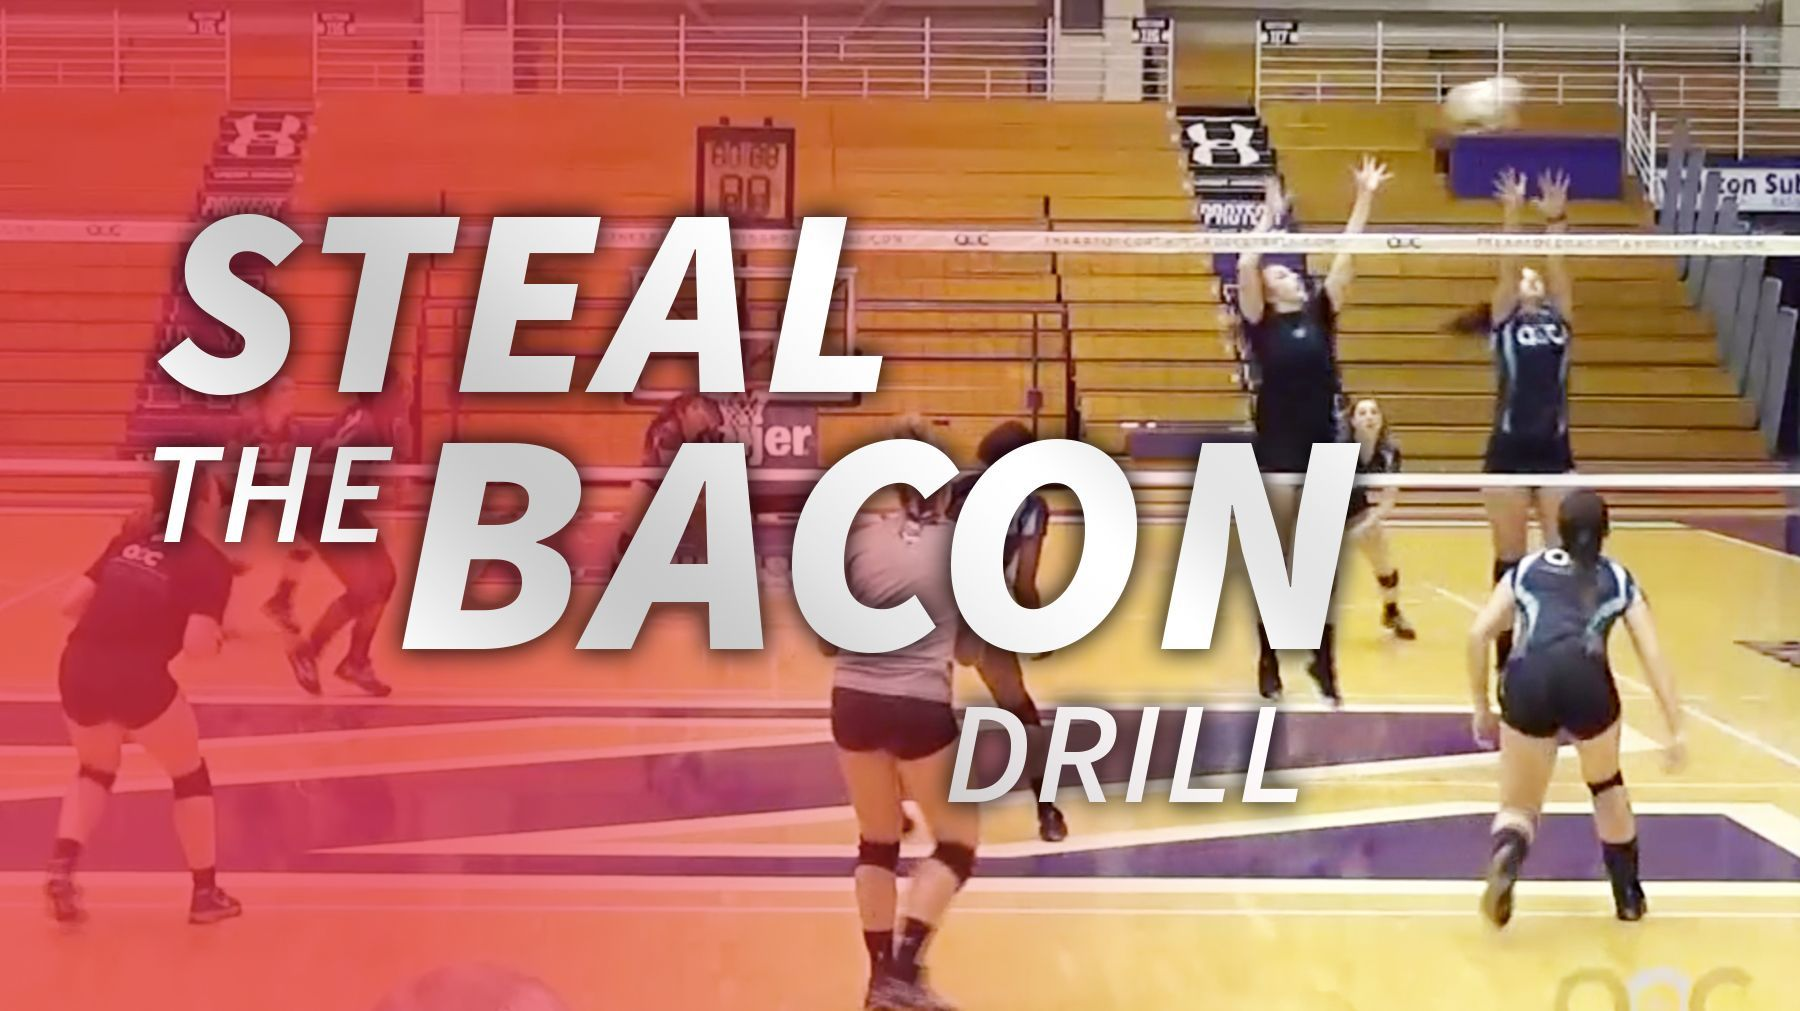 Steal The Bacon Drill With Cathy George The Art Of Coaching Volleyball Coaching Volleyball Volleyball Skills Youth Volleyball